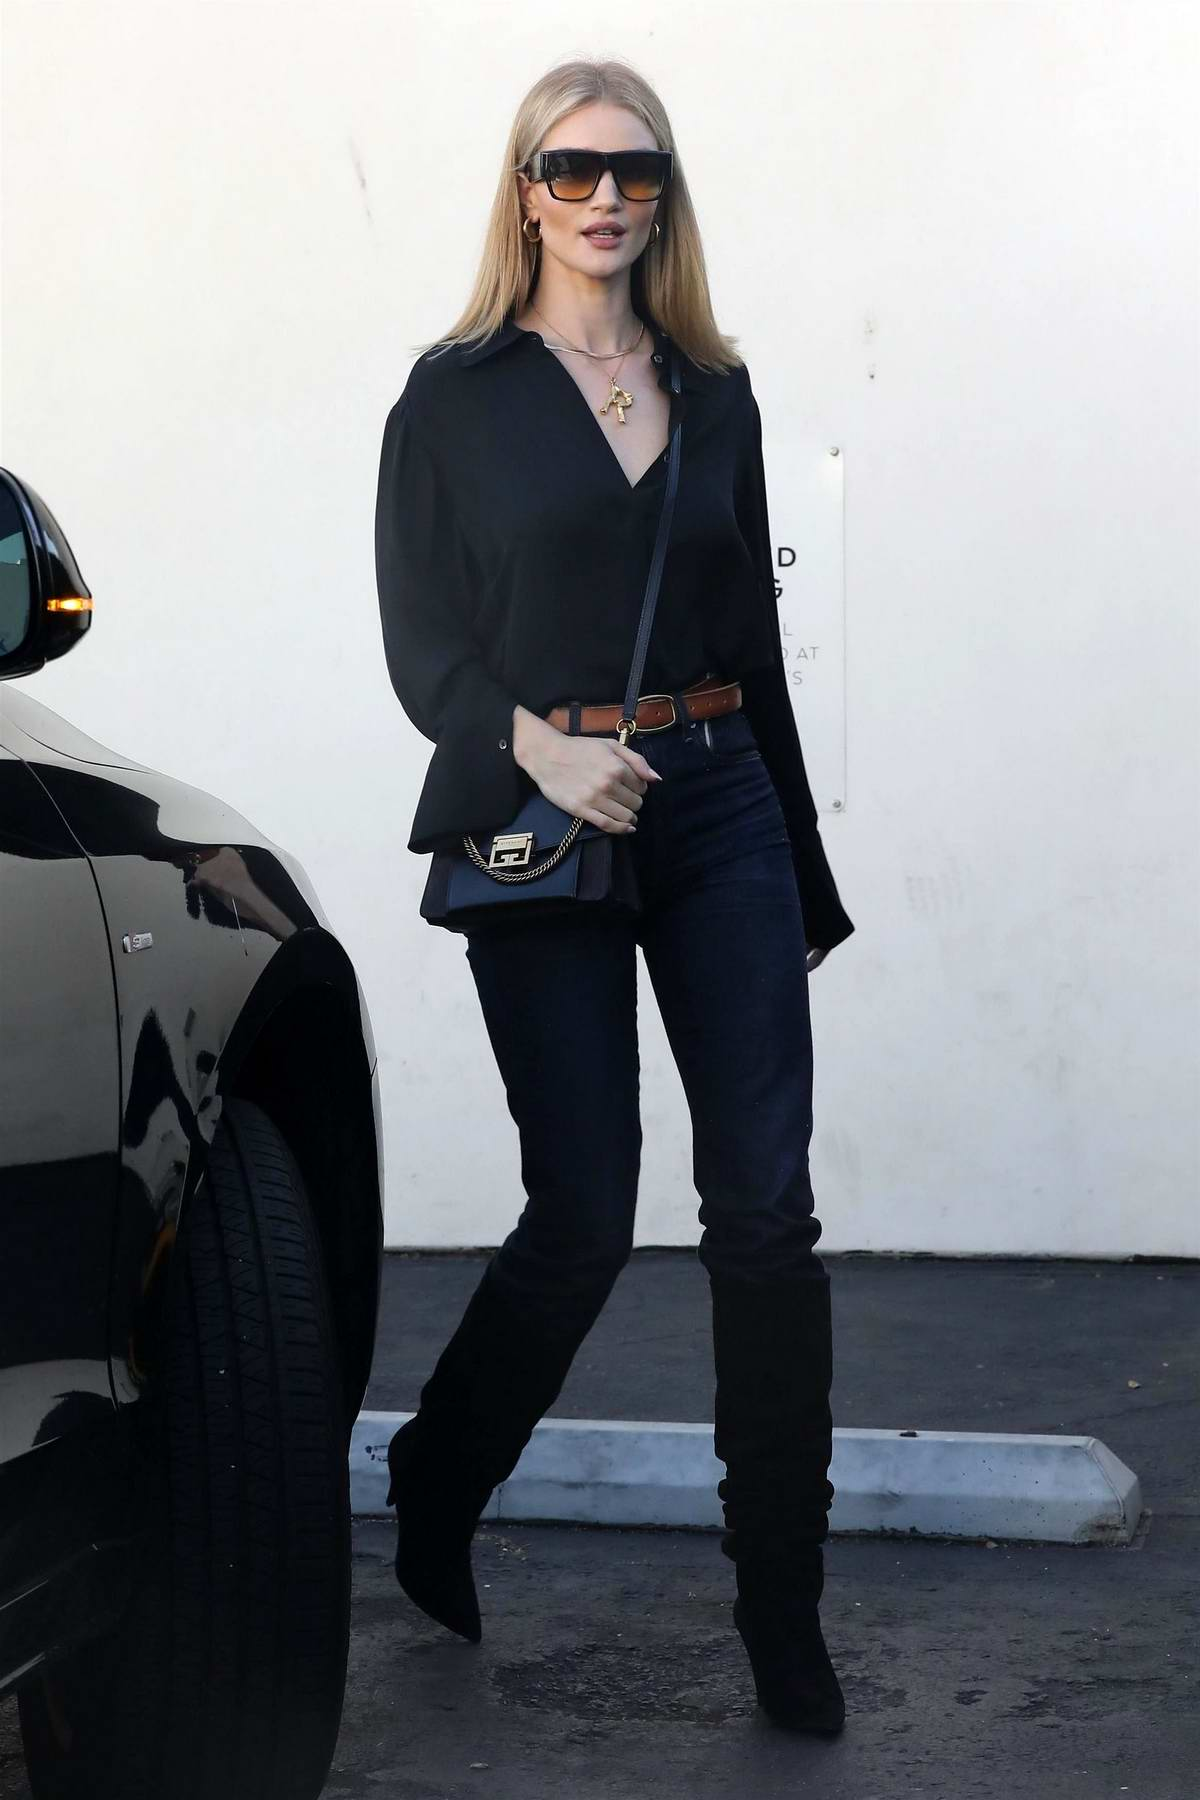 Rosie Huntington-Whiteley grabs lunch at E. Baldi with her friends before heading over to Alo Yoga for shopping in Beverly Hills, Los Angeles